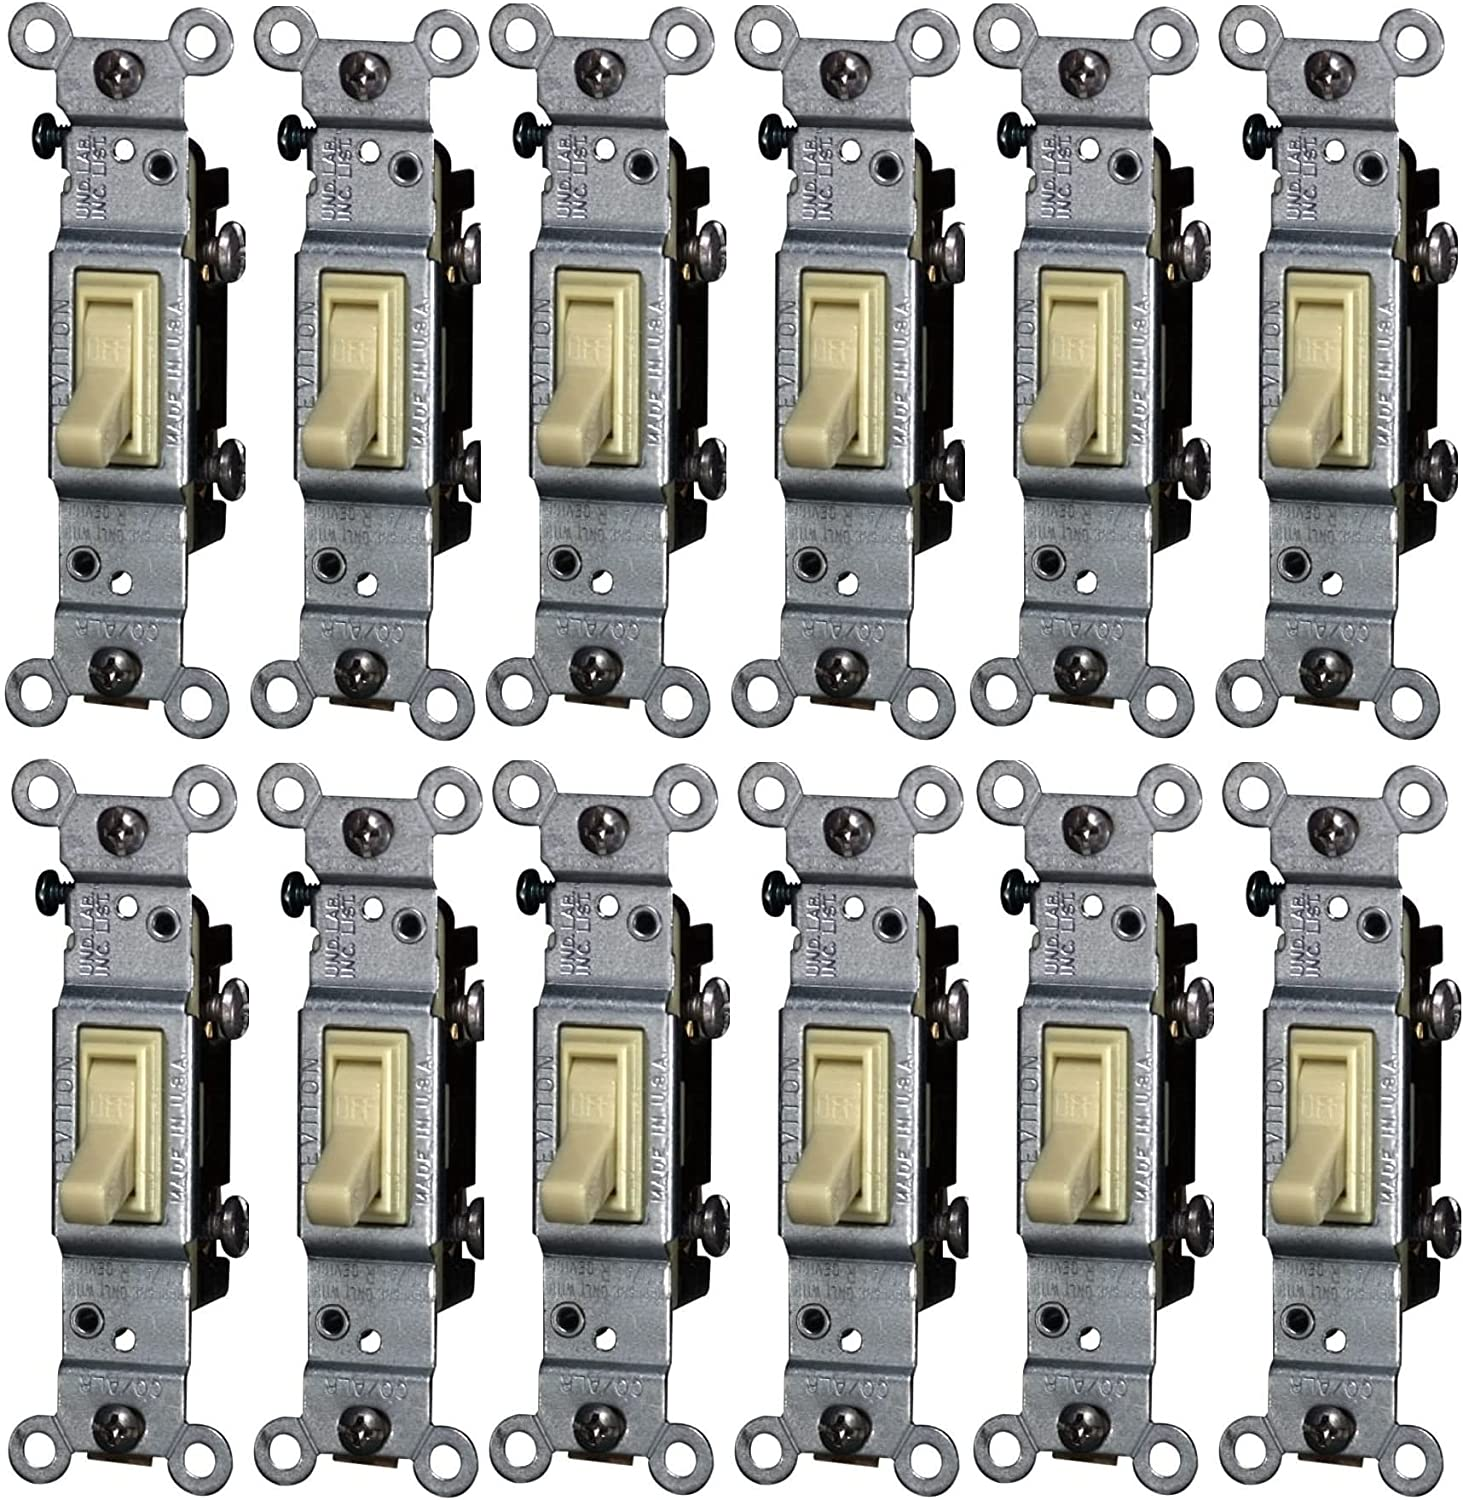 Leviton CO ALR Limited price sale 15 Attention brand amps pk Ivory Toggle 1 Switch